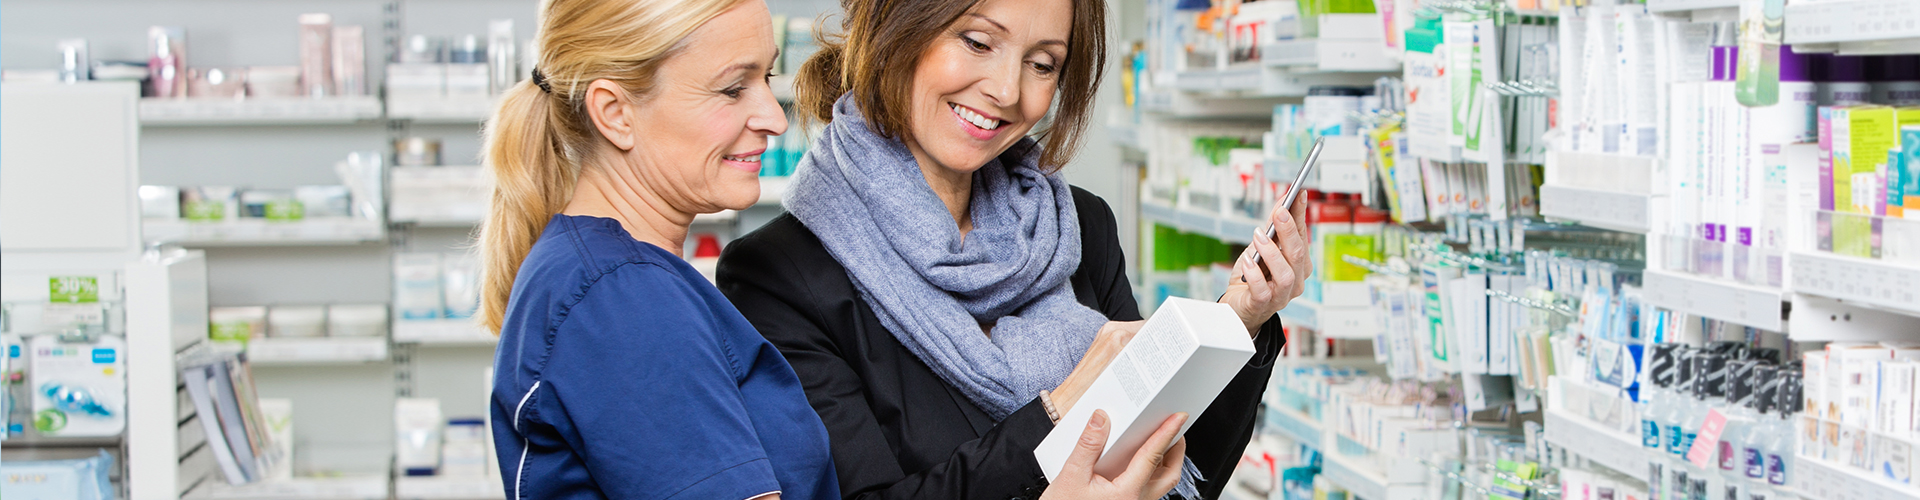 pharmacist helping customer with medicines